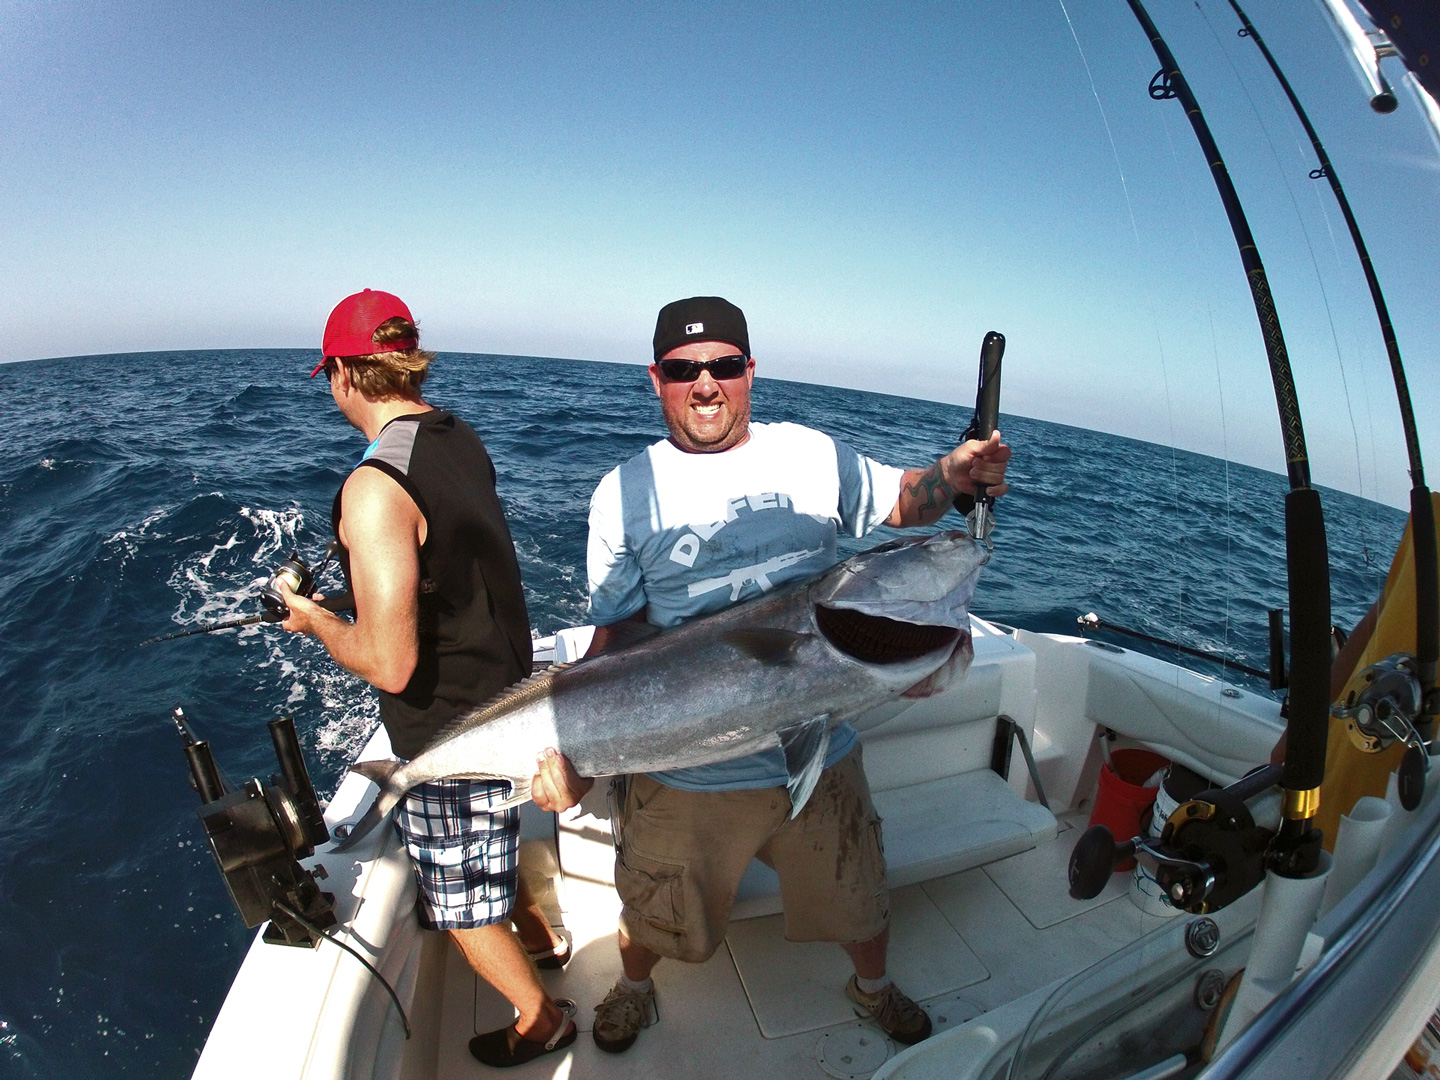 St petersburg tampa bay fishing charters autos post for Fishing st petersburg fl